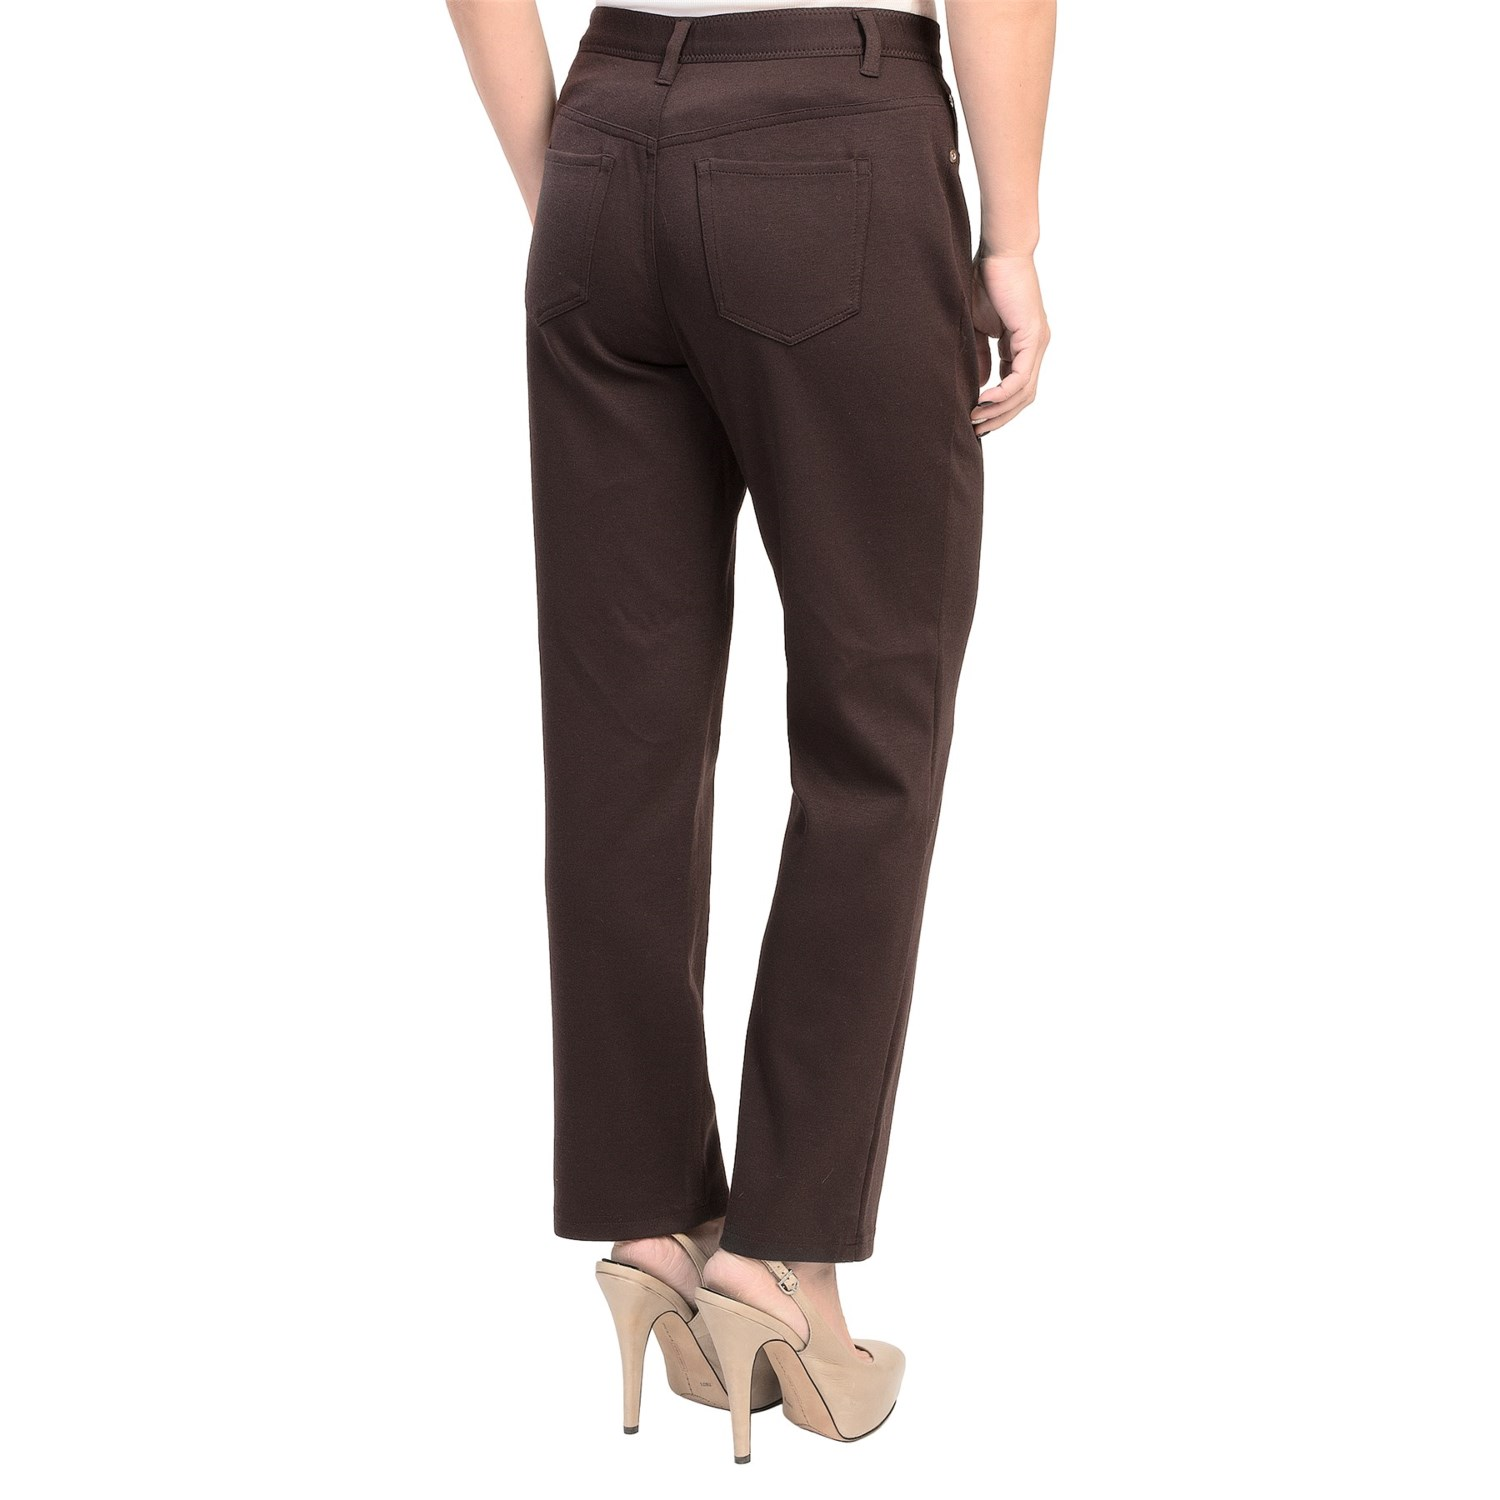 Innovative Images Amp Pictures Of Intensity Women39s Low Rise Double Knit Pant